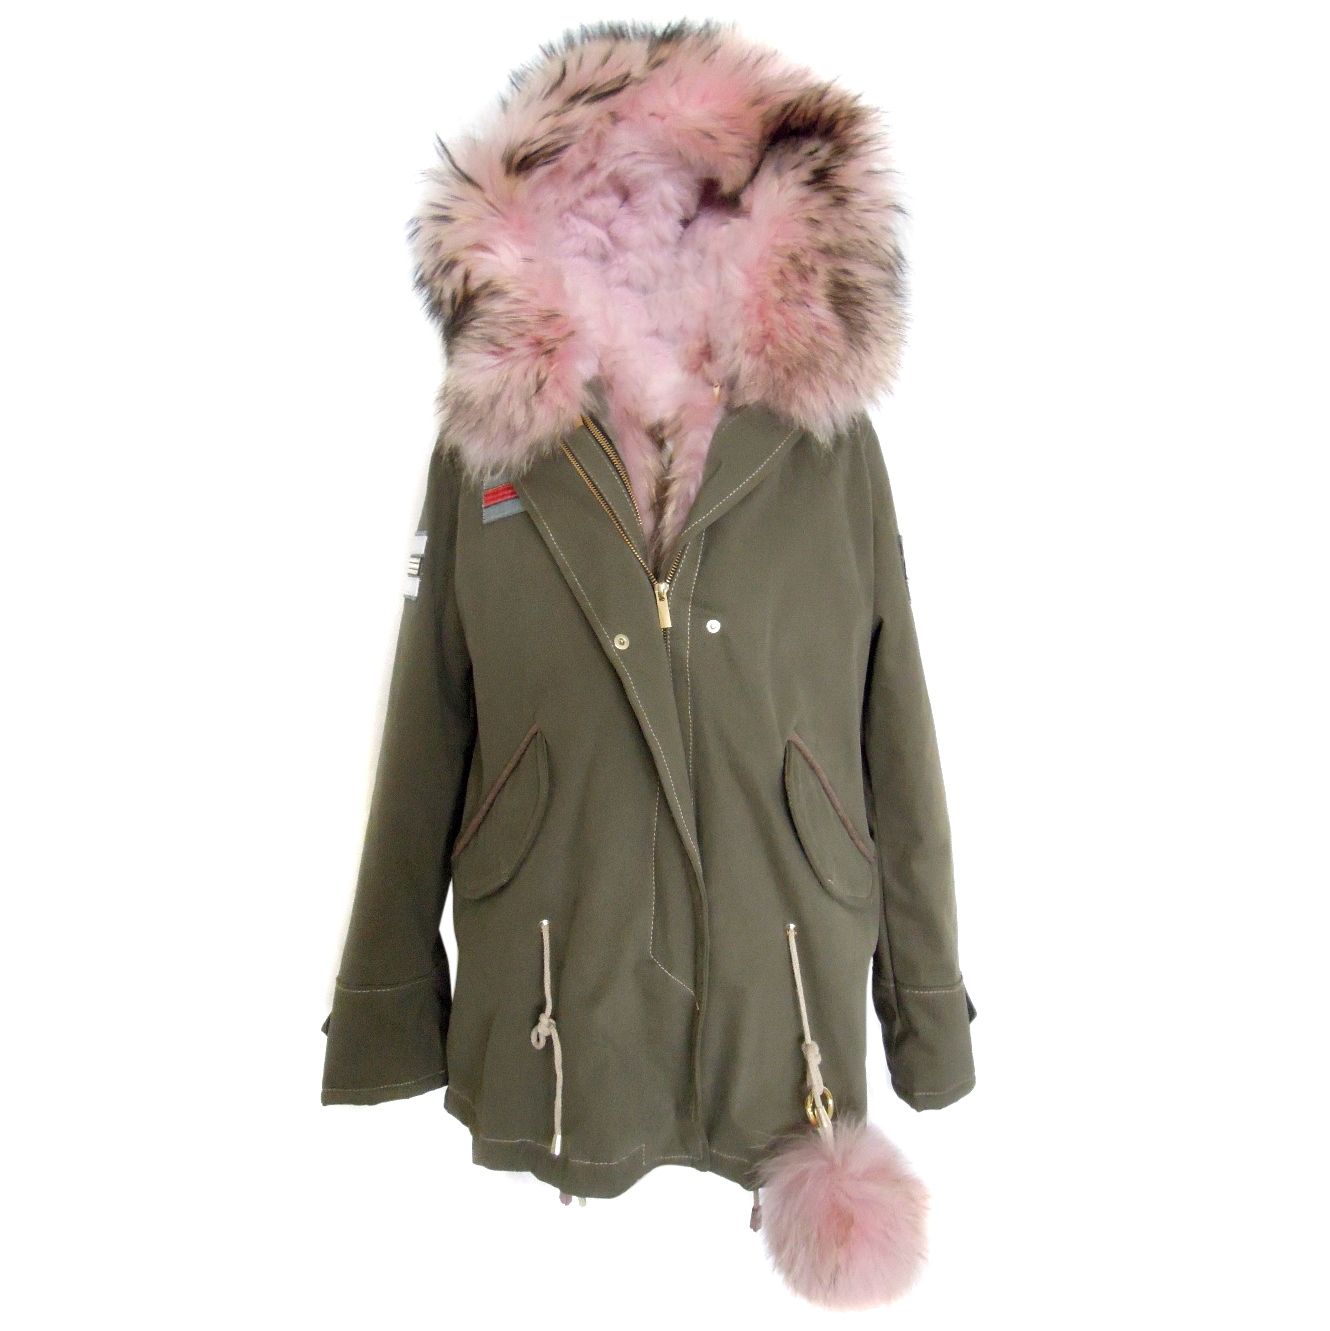 6e550a557da Wild Arctic khaki coat with fox